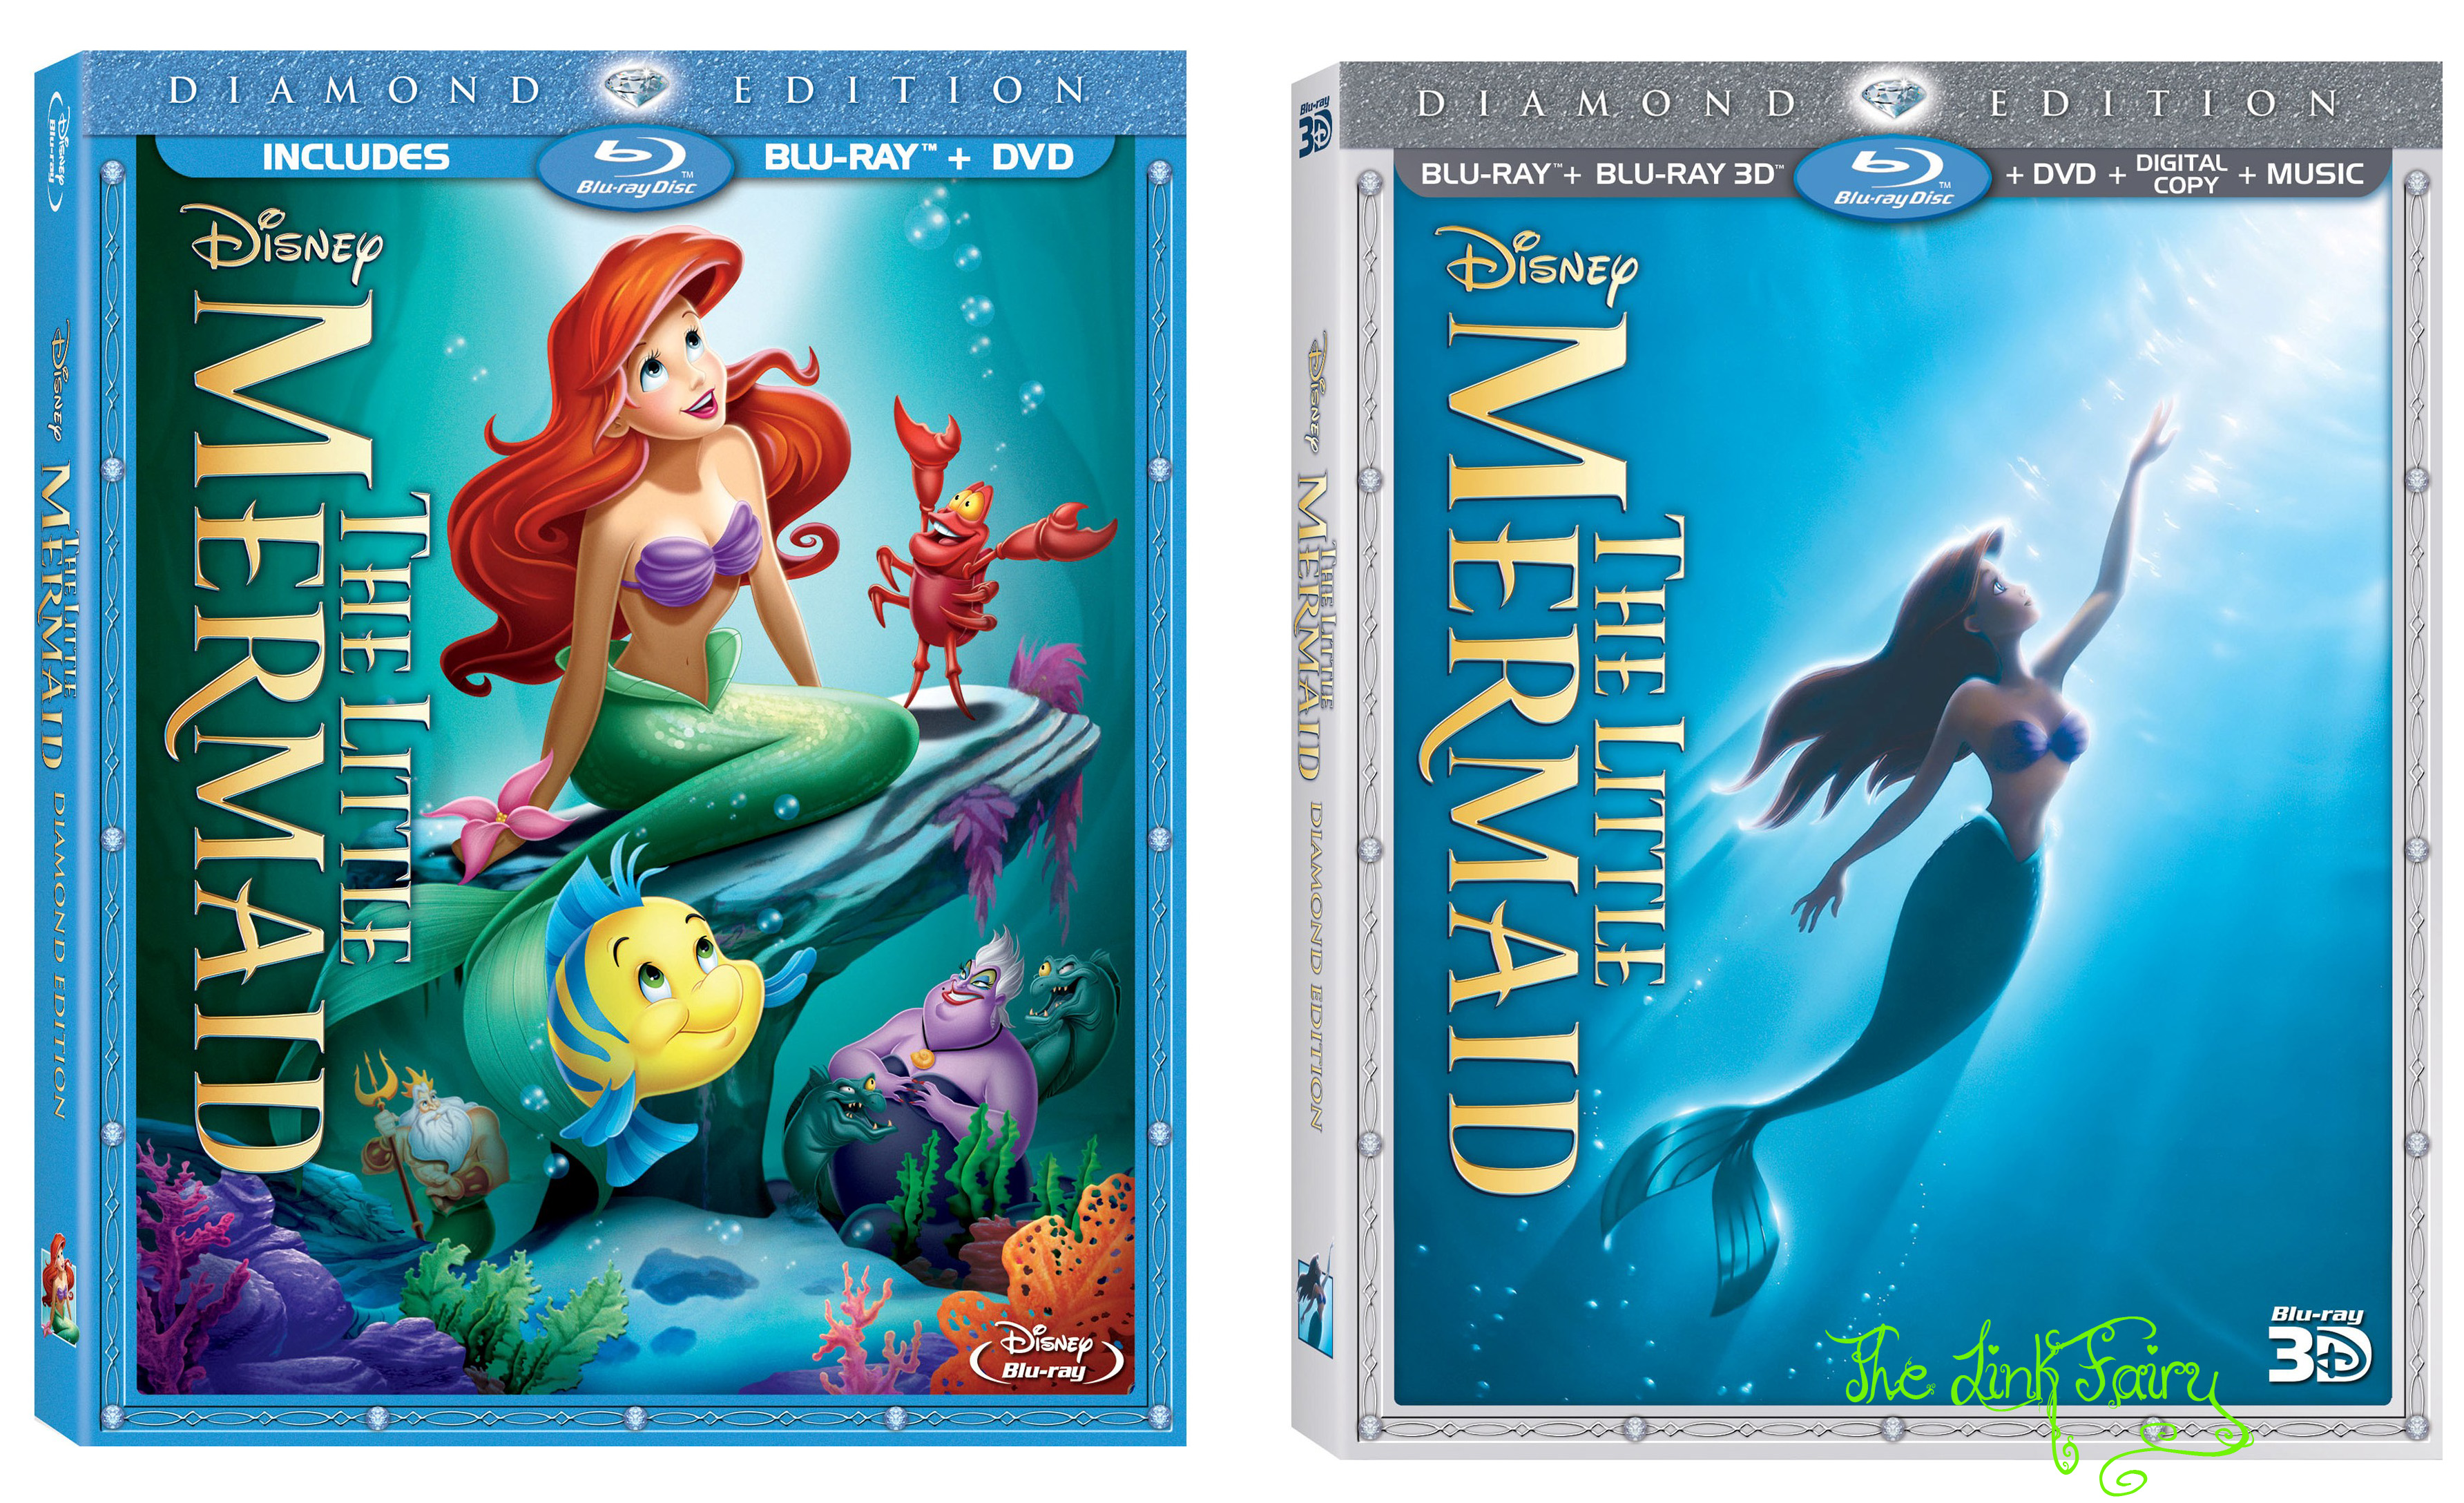 Disney's The Little Mermaid Will Splash Into Blu-Ray Hi Def This October!